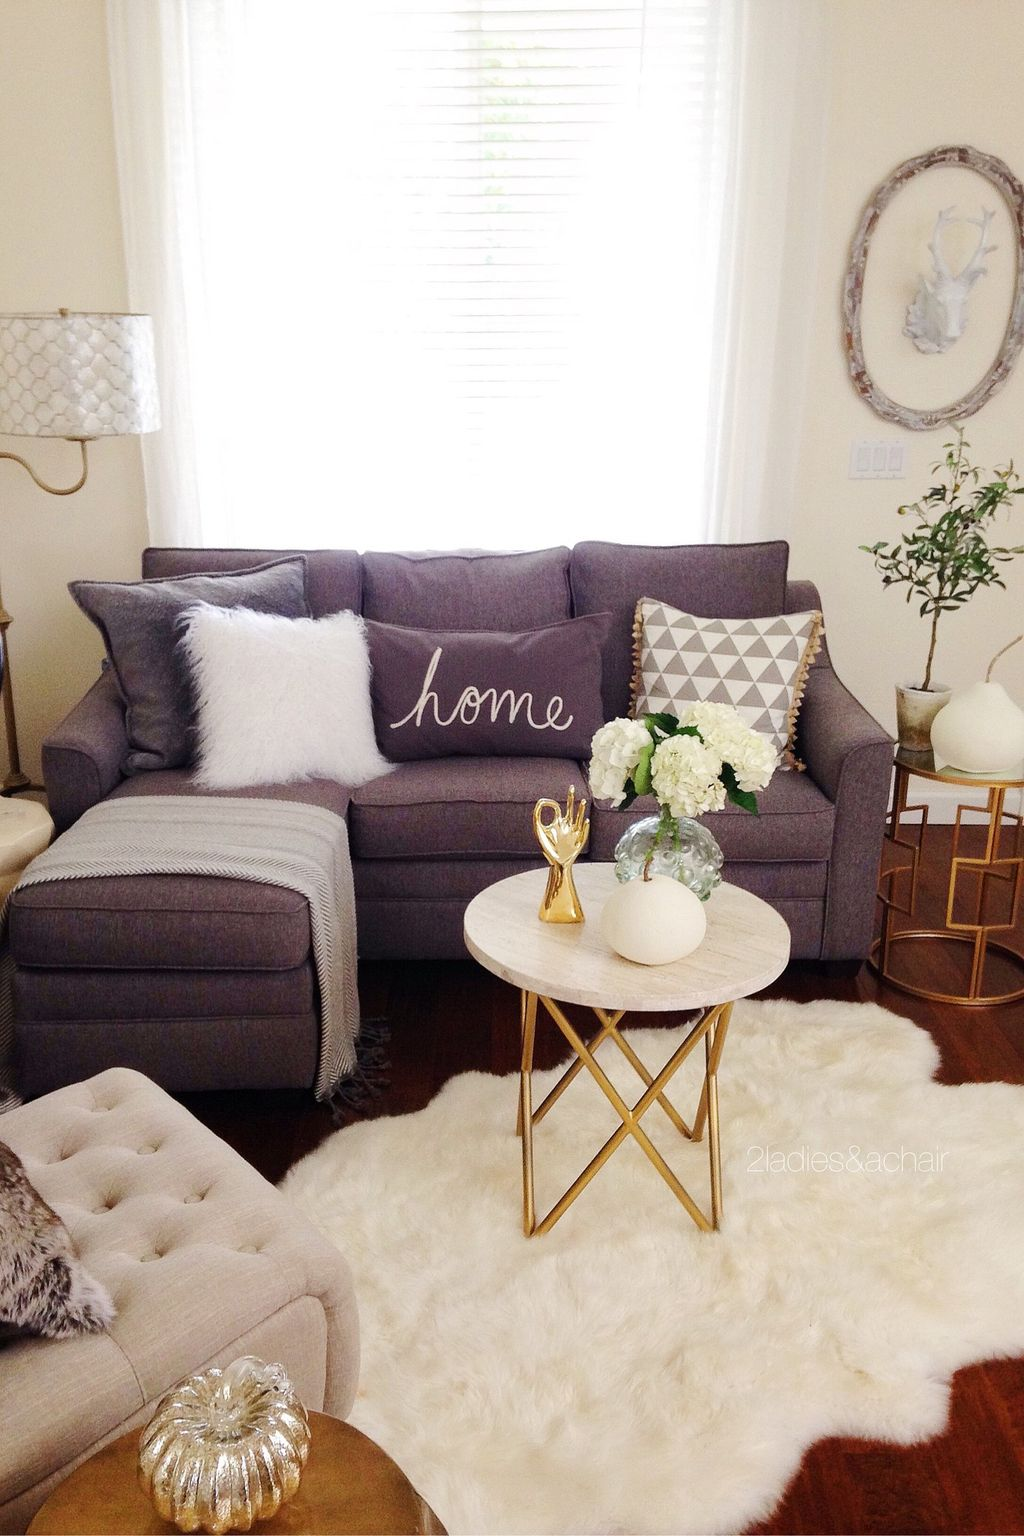 Inspiring And Affordable Decoration Ideas For Small Apartment 26